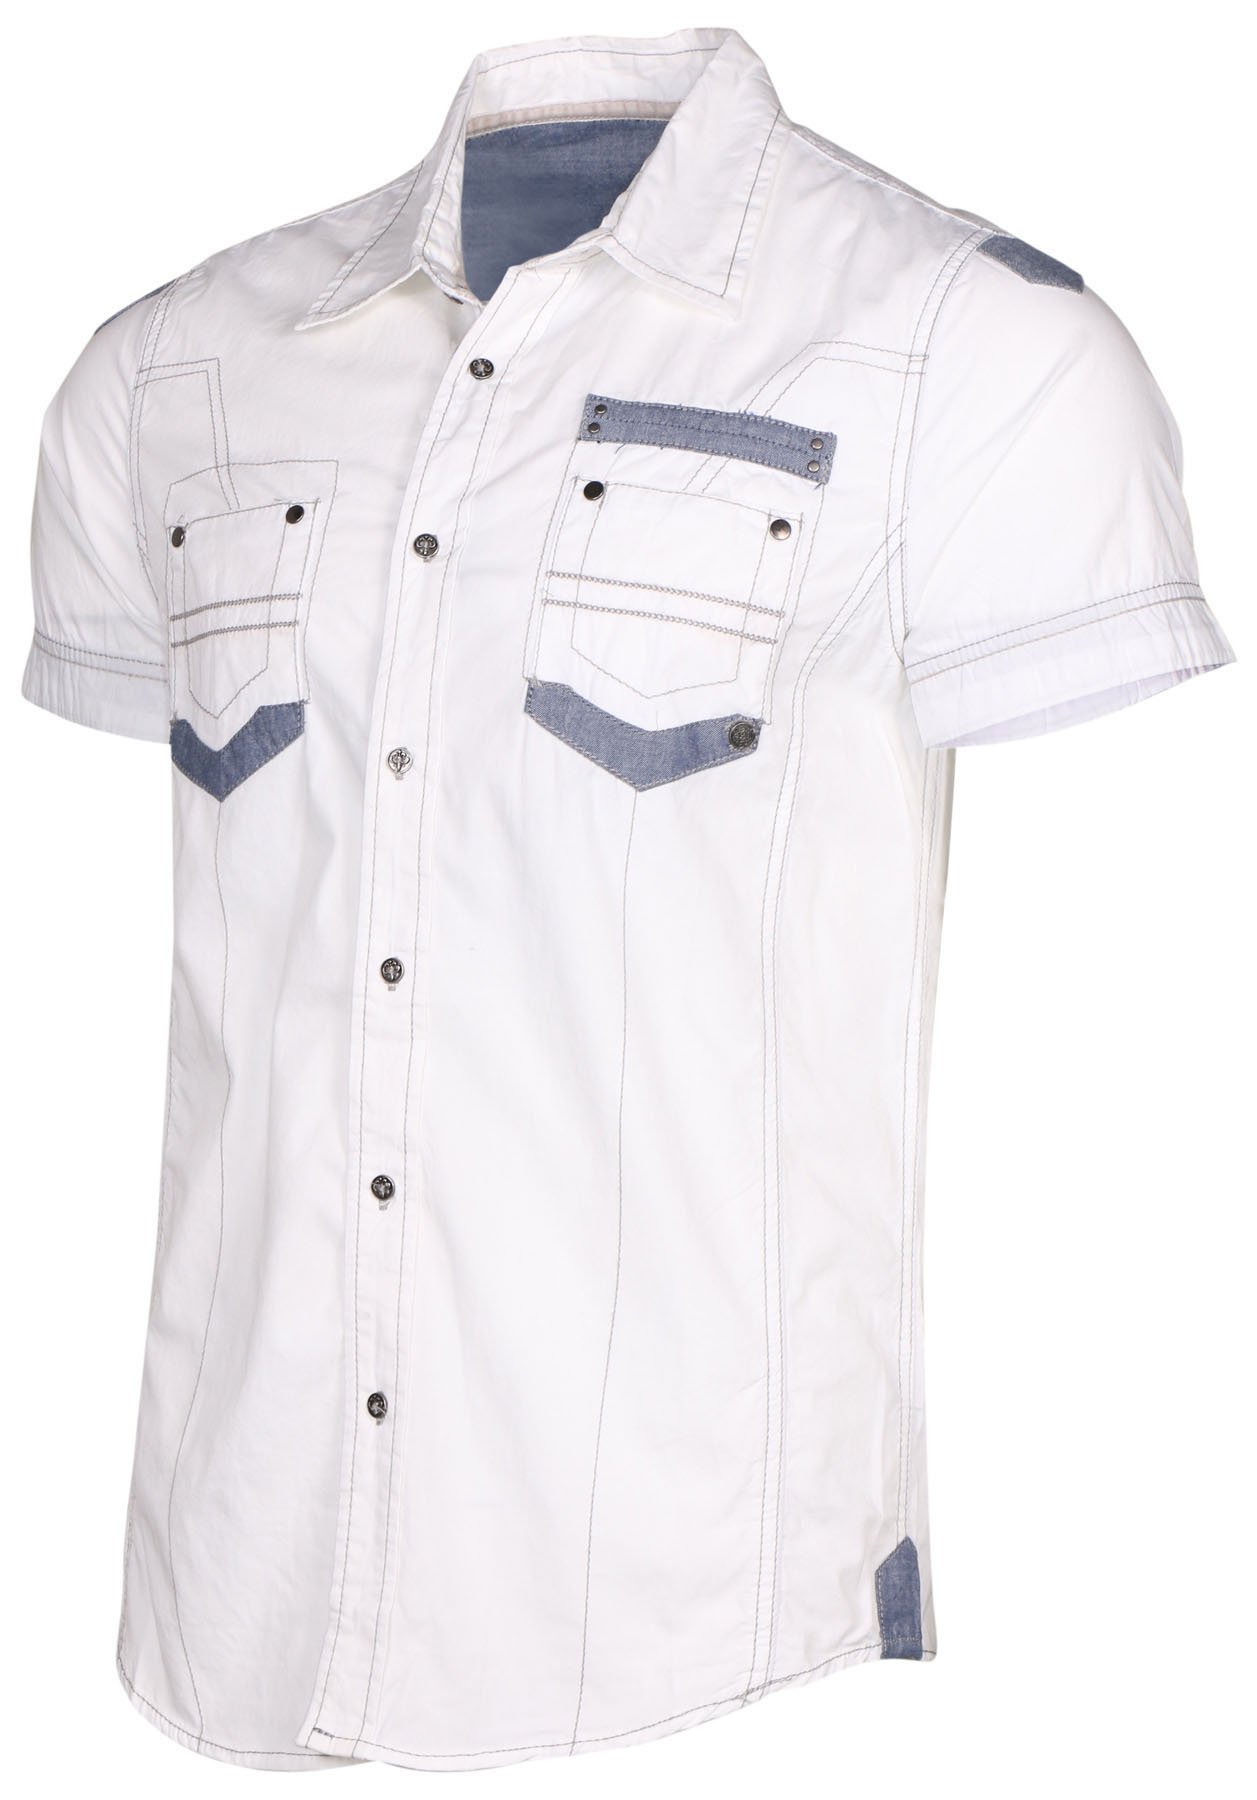 Circle one men 39 s short sleeve casual button down shirt ebay for Mens short sleeve button down casual shirts